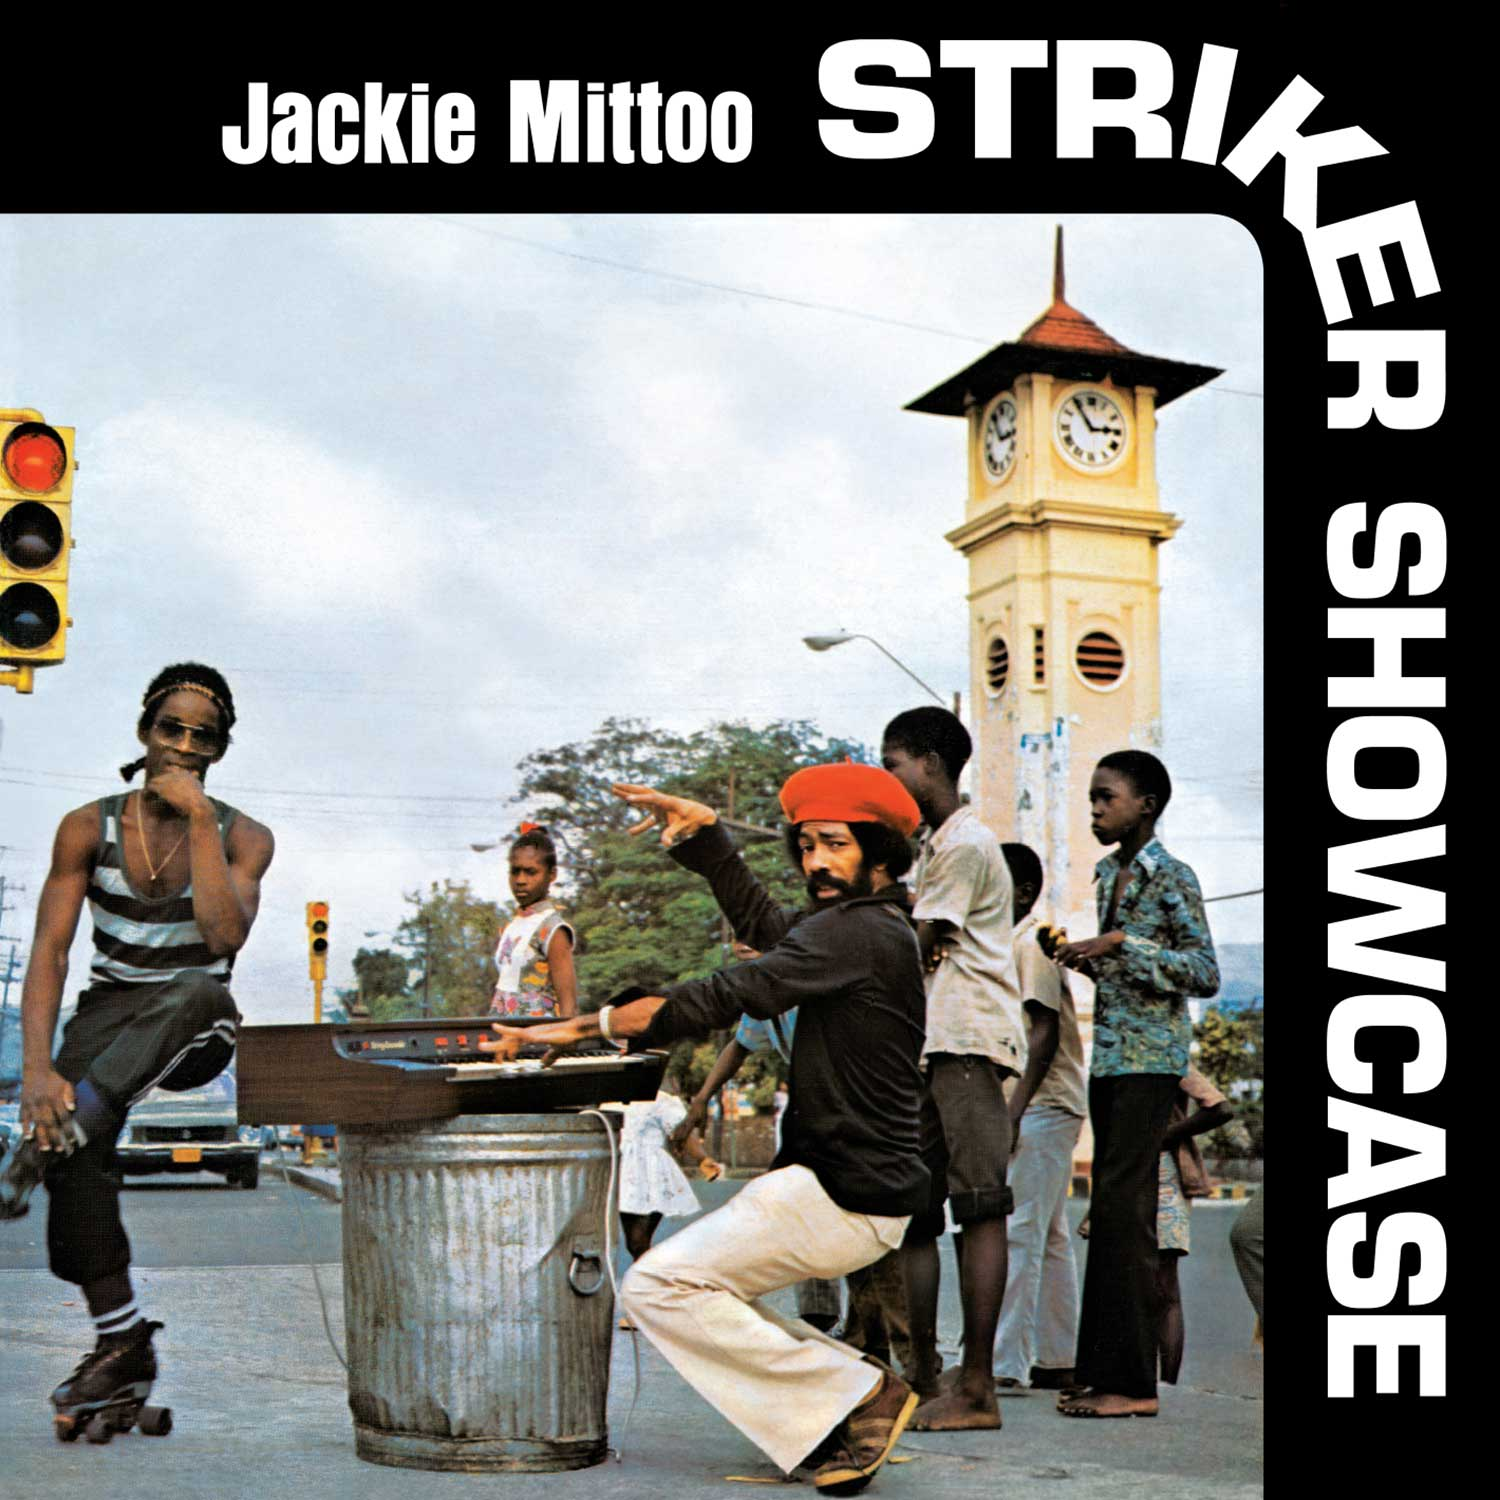 Striker Showcase – Jackie Mittoo